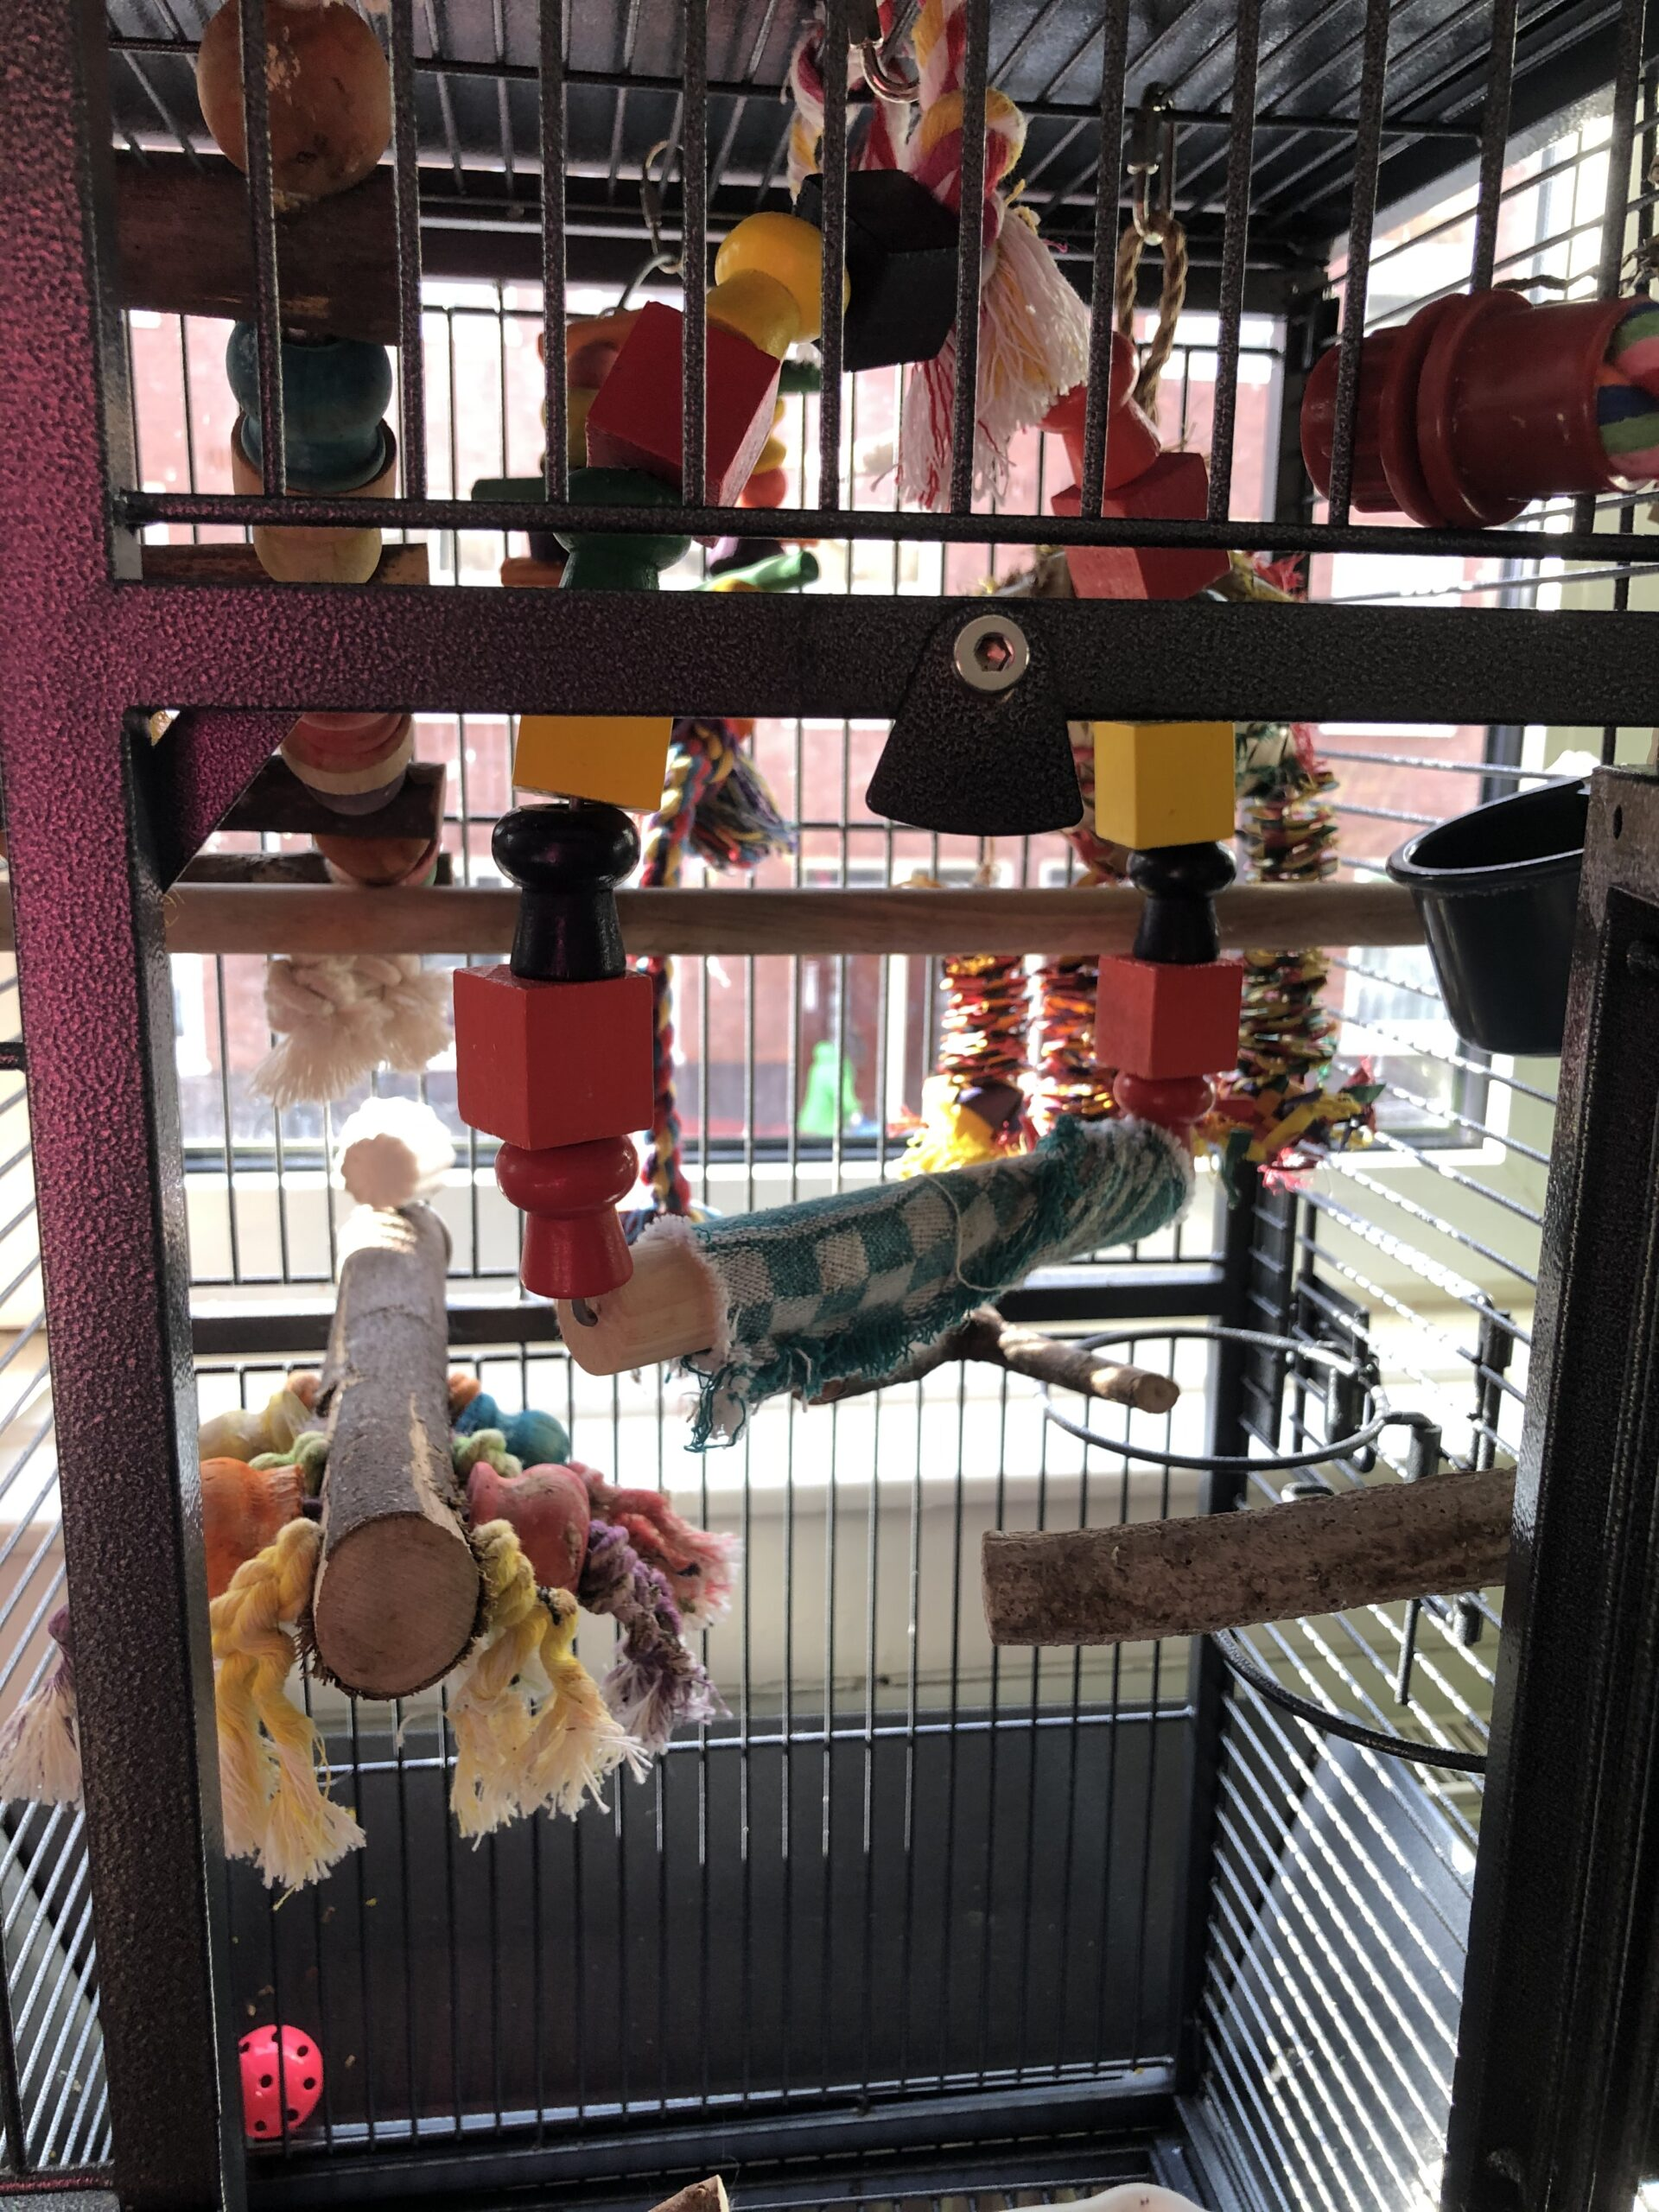 Parrot bird cage inside view